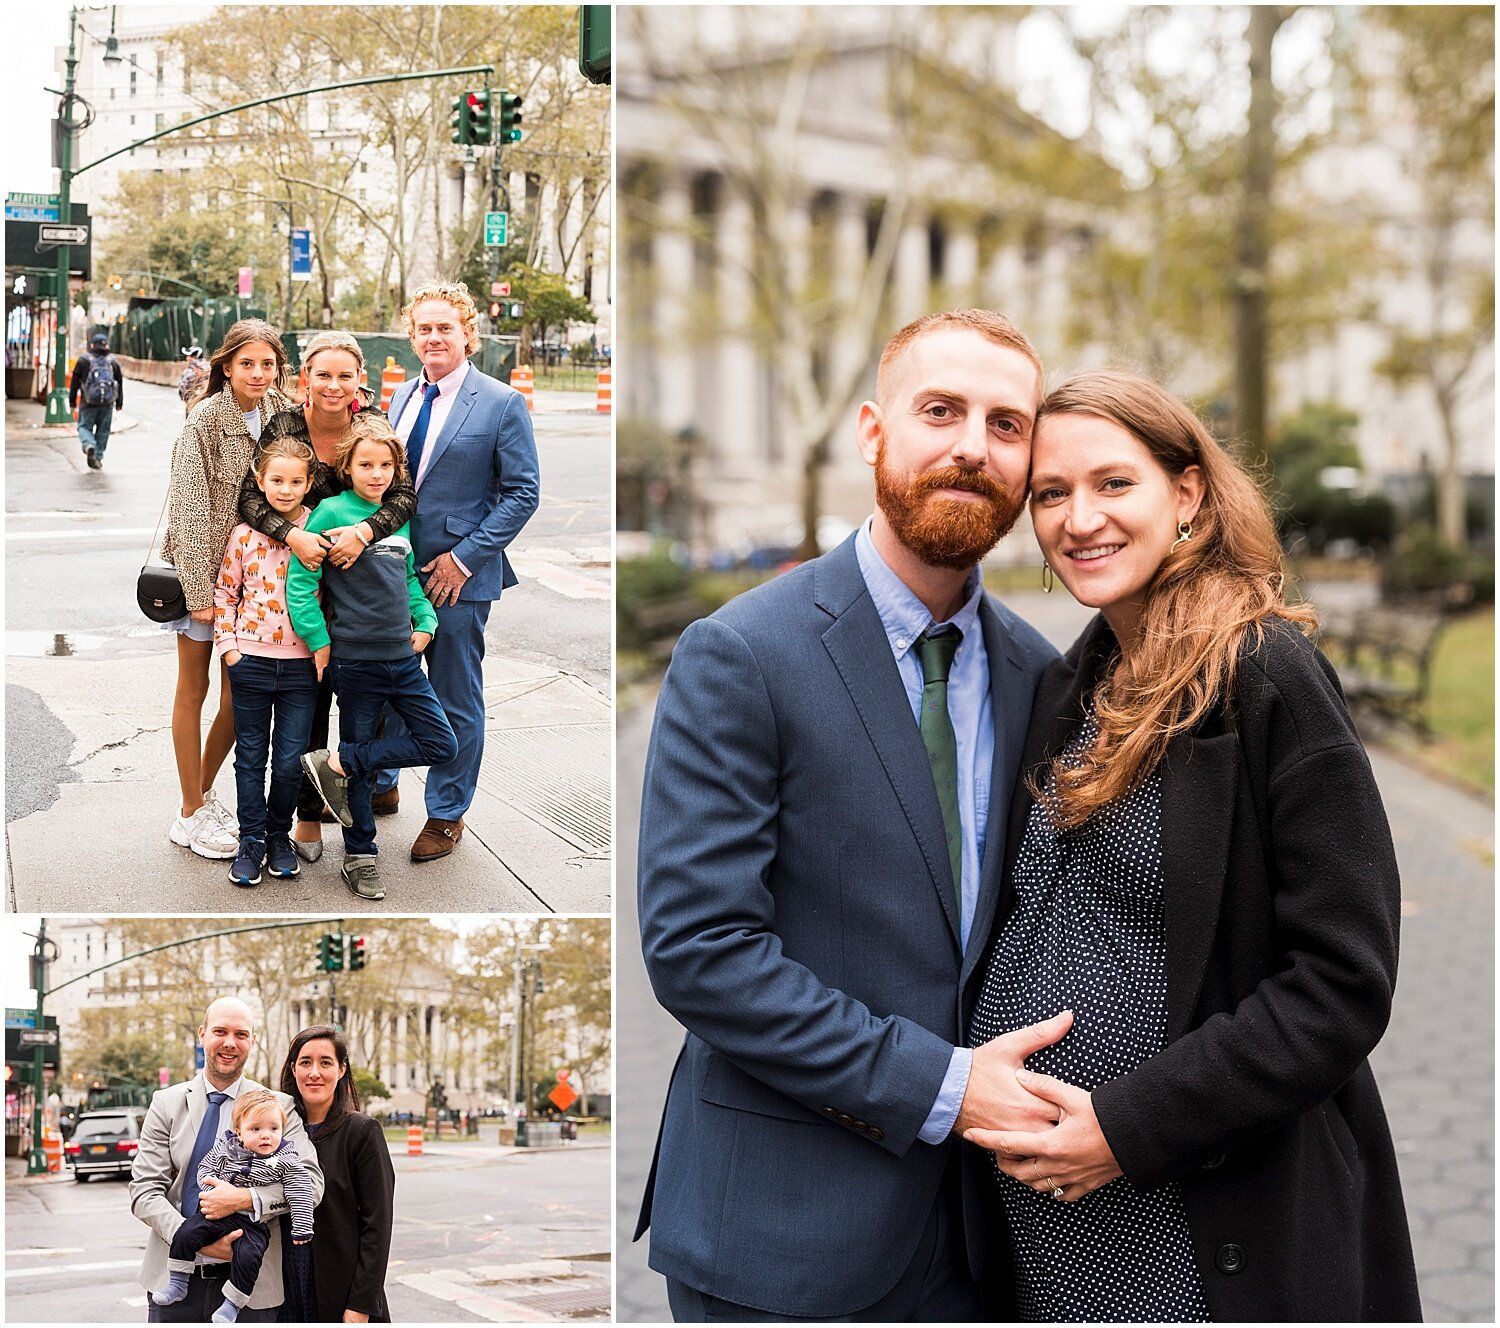 NYC-City-Hall-Courthouse-Elopement-Photographer-Apollo-Fields-021.jpg